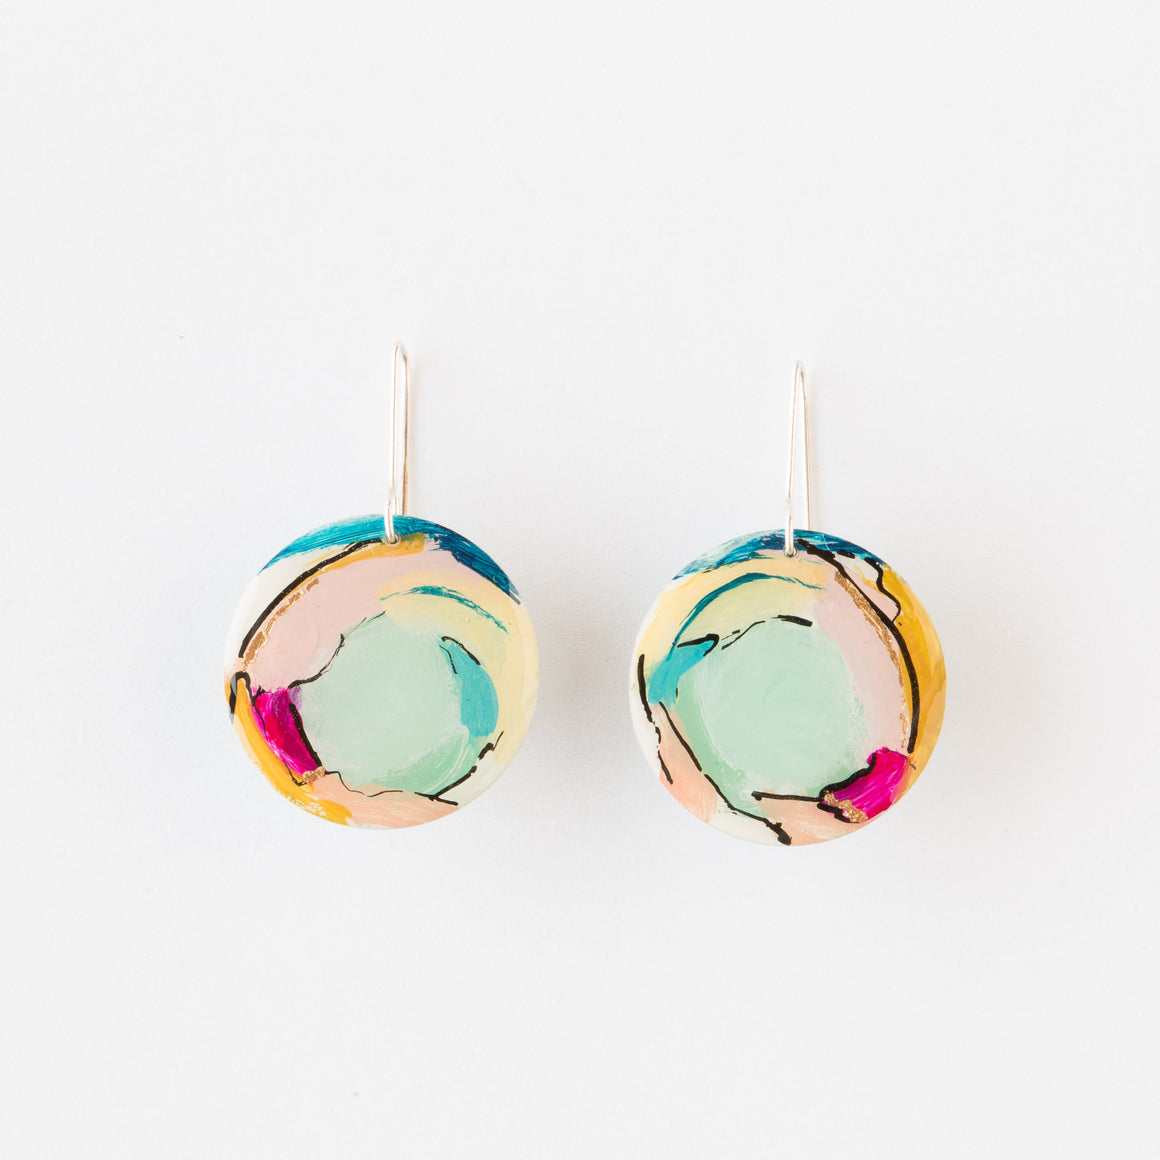 723 - Hand Painted Earrings